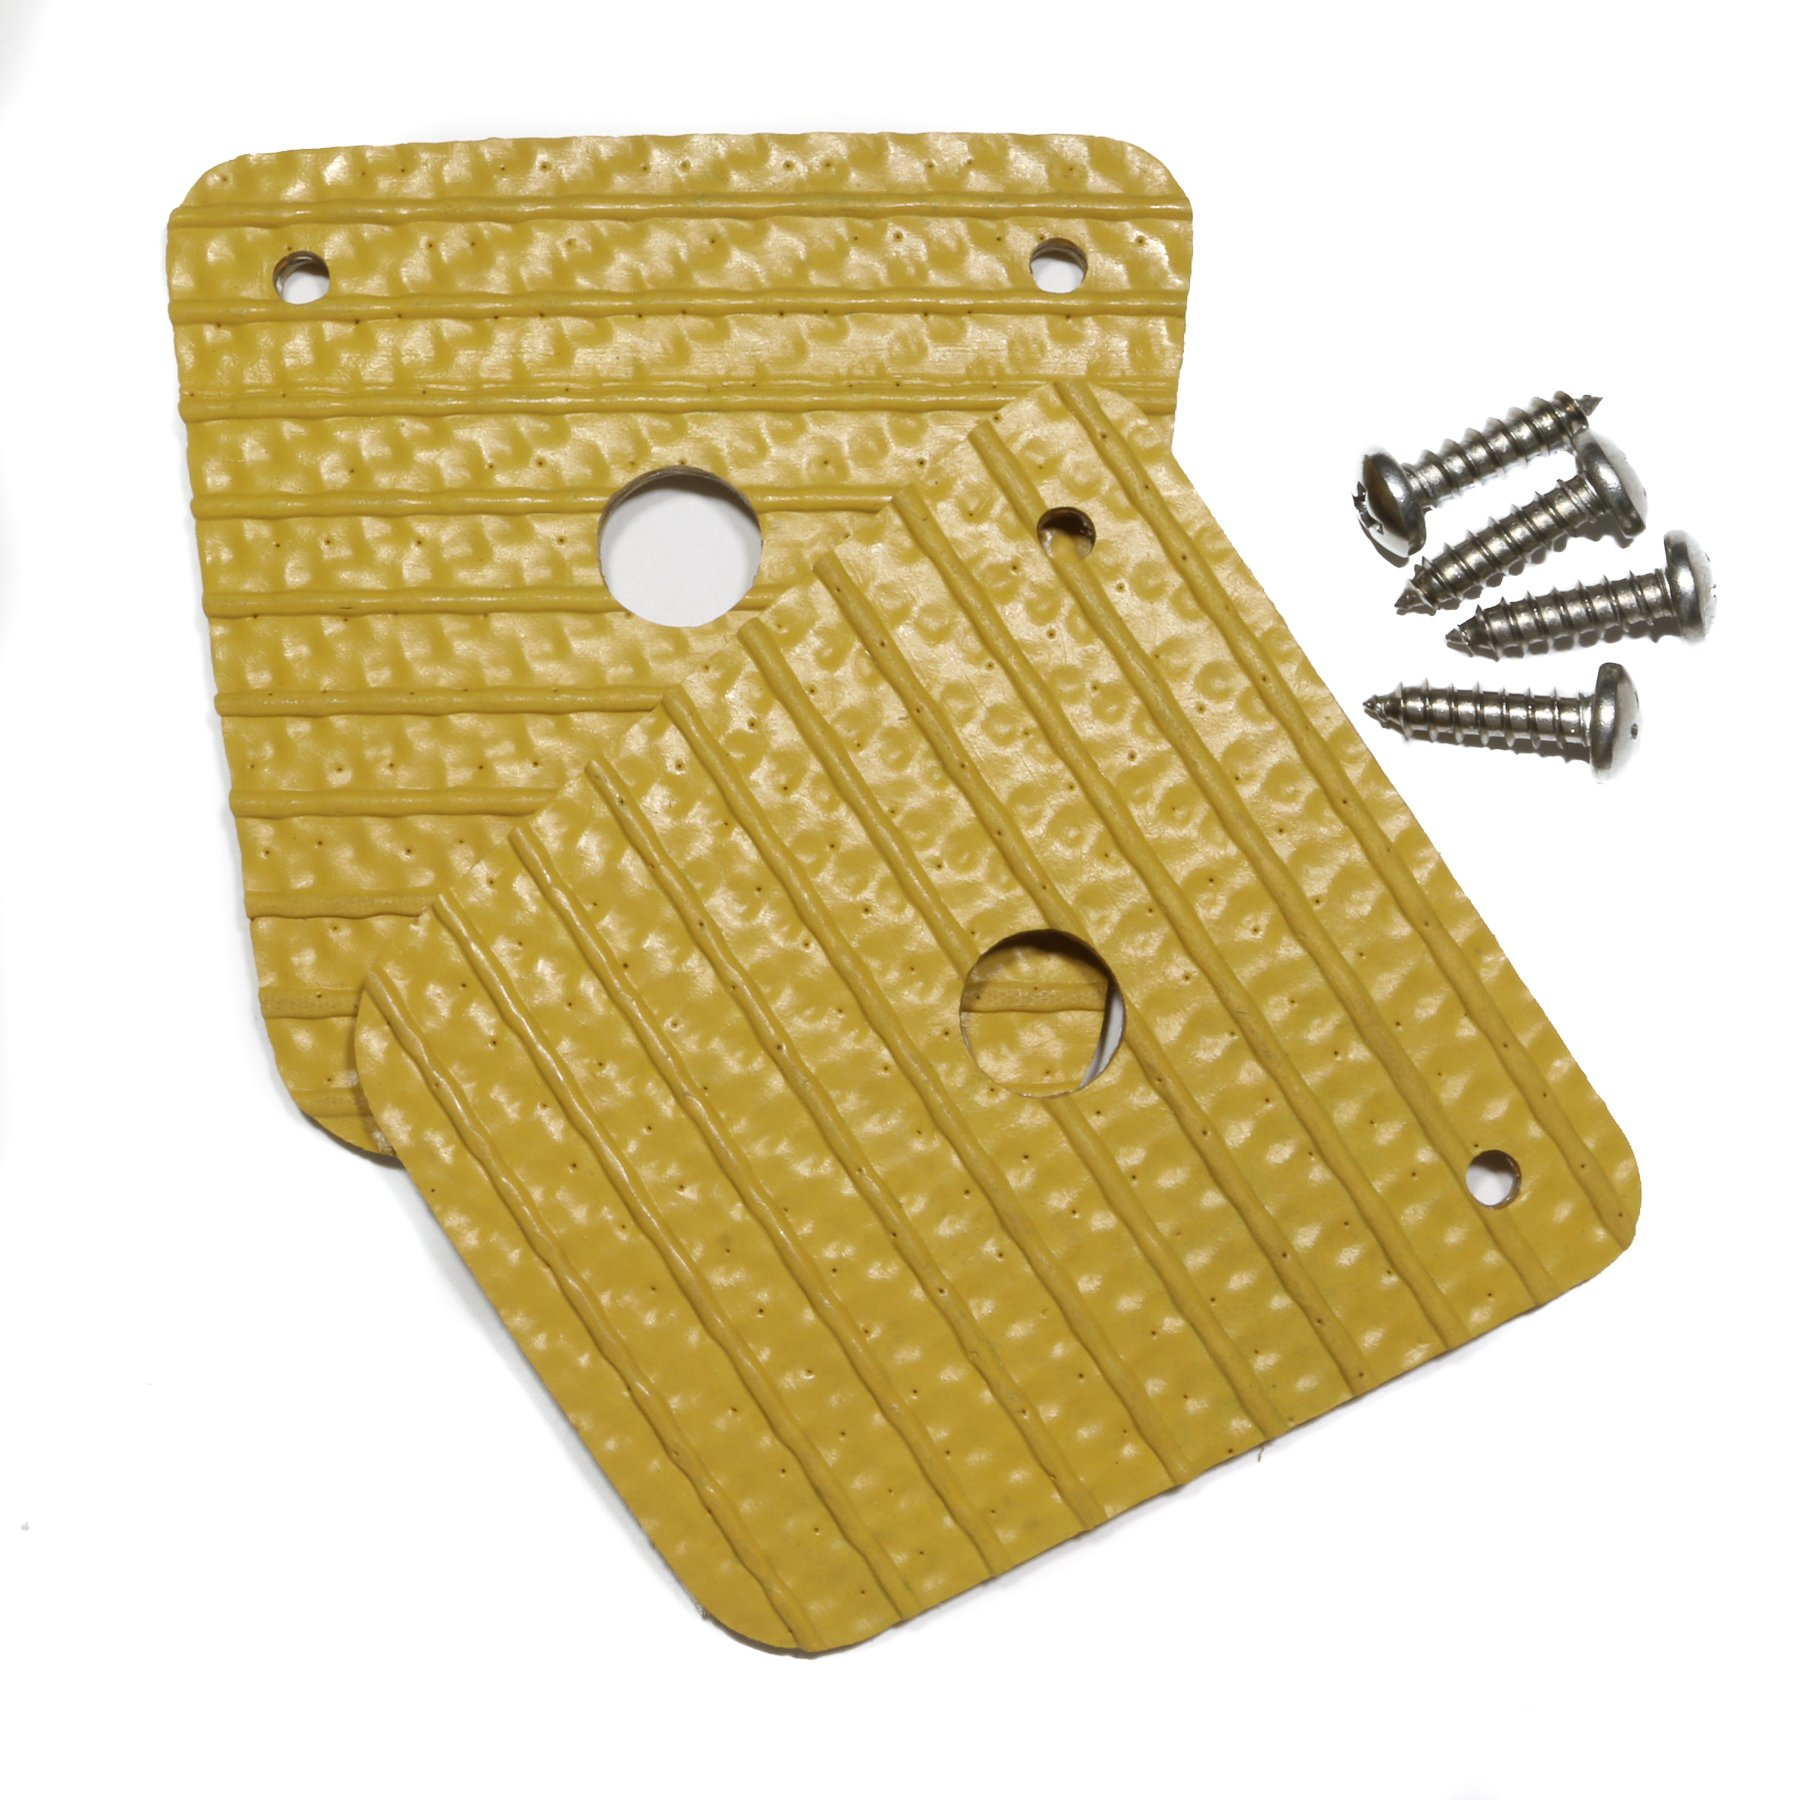 Unhinged Solutions Igloo Cooler Replacement Latches (Set of 2) - Unbreakable, Repurposed Fire Hose